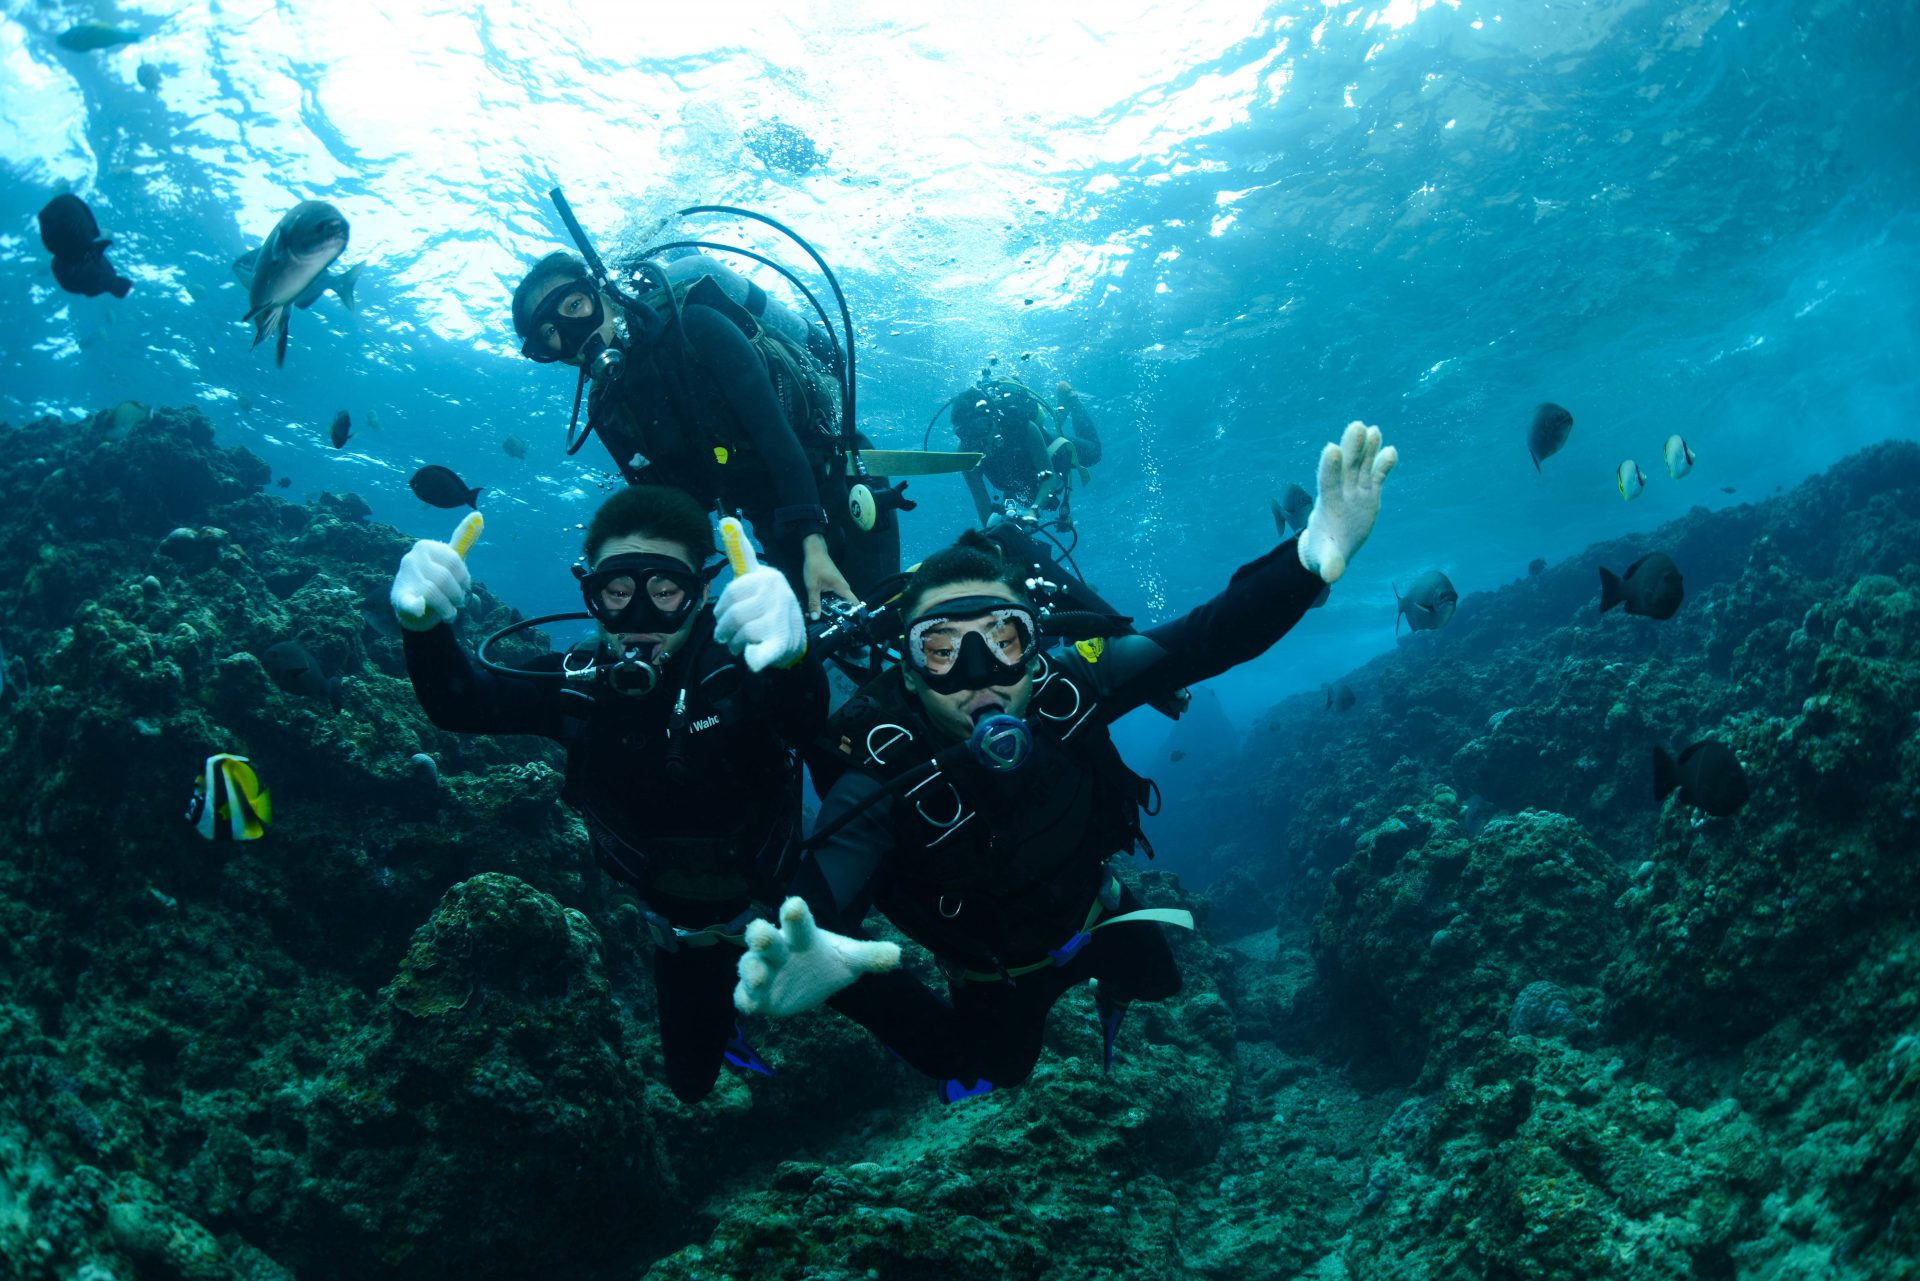 divers in the ocean